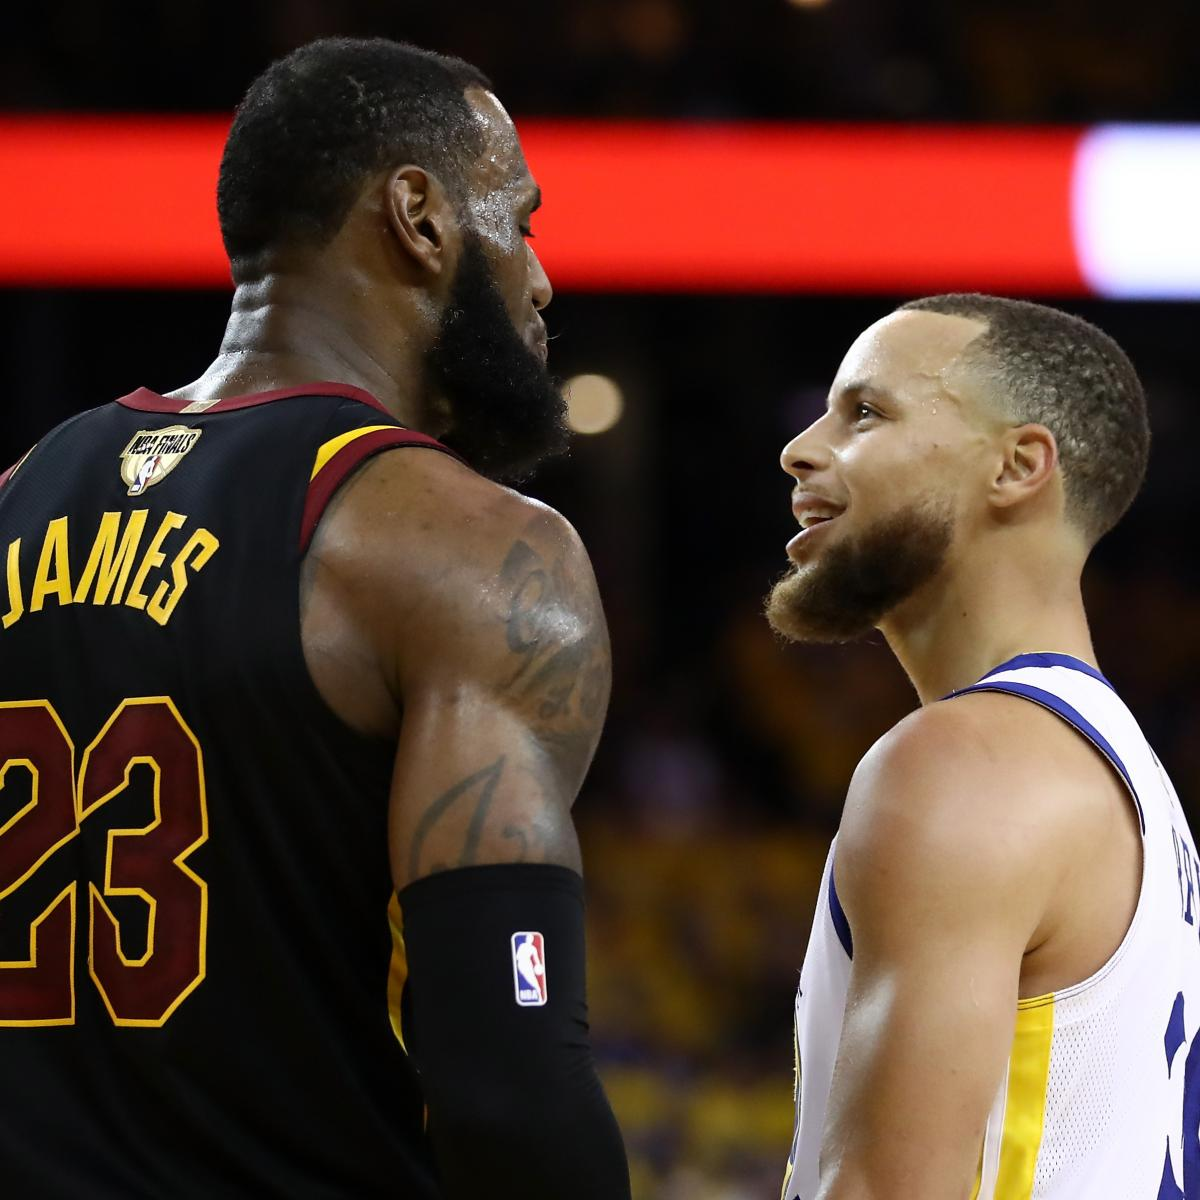 Stephen Curry Dishes on Trash Talk with LeBron James During Game 1 of NBA Finals